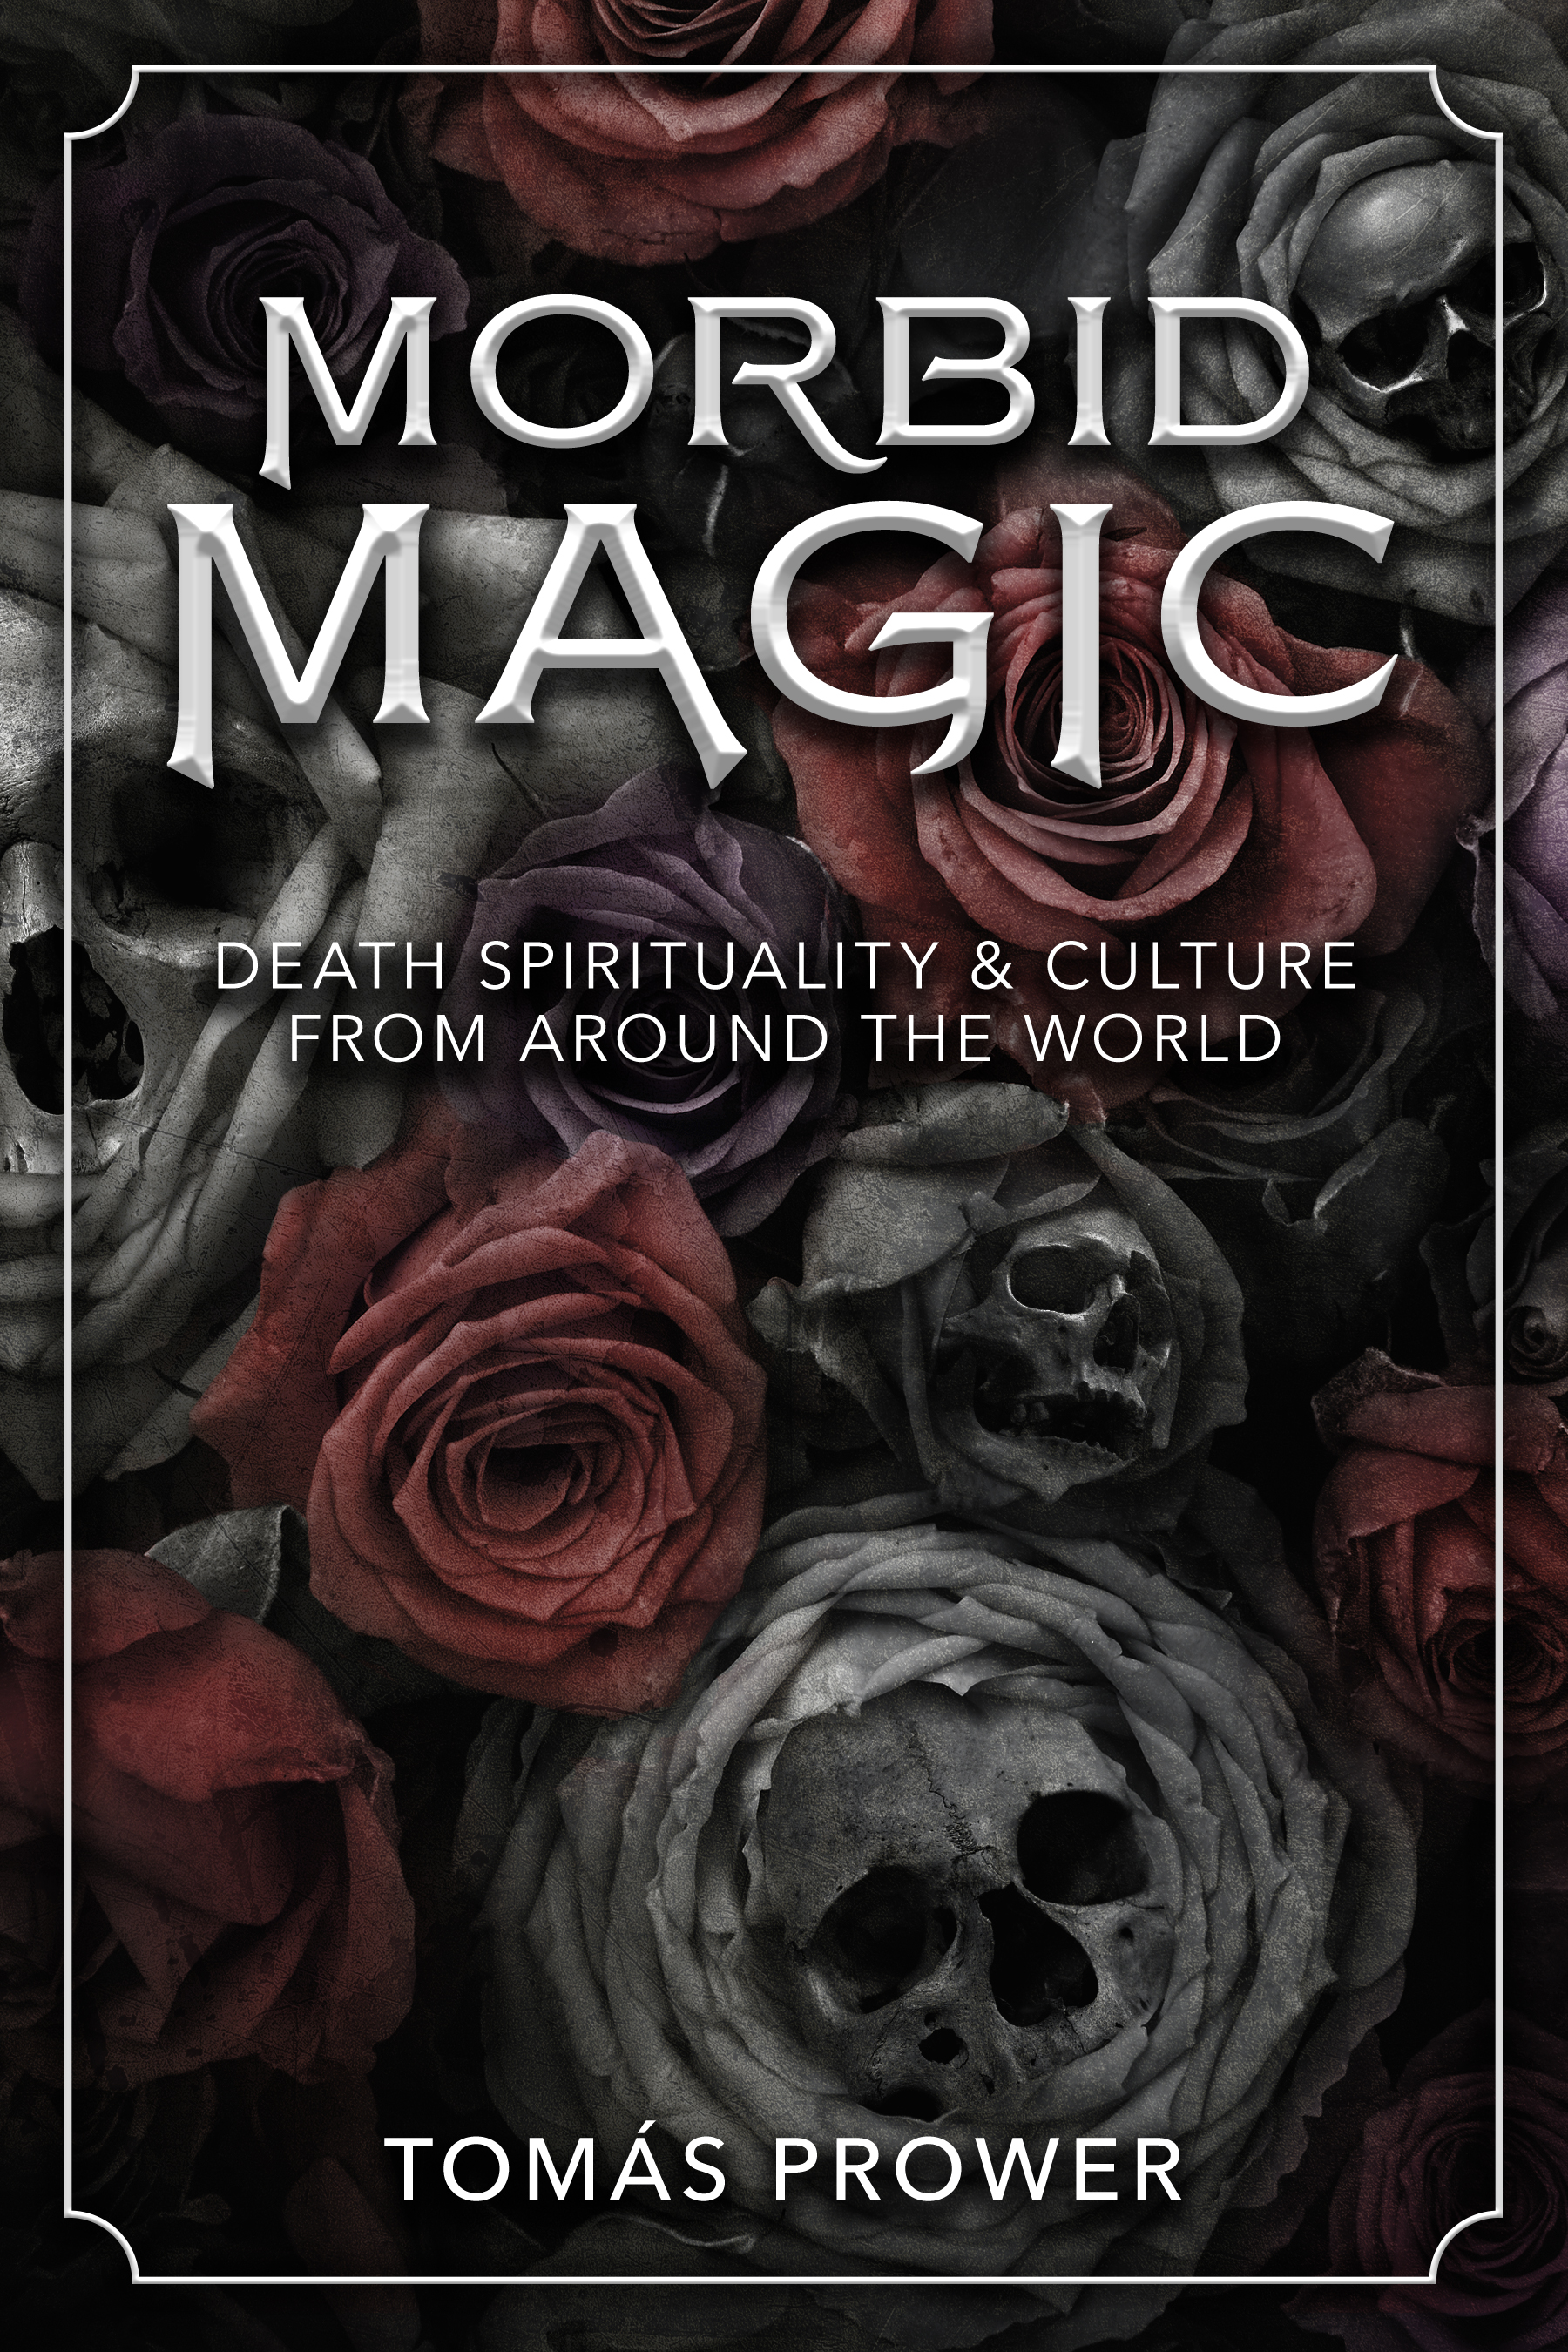 Coming September 2019   Written with a mix of reverence, approachability, and deadpan wit by an actual mortician,  Morbid Magic  is the first multi-cultural guide to death spirituality and traditions from all over the world and from different historical eras.  Discover the lore and magic of death, both on the physical and spiritual planes. Explore hands-on activities, spells, and prayers that will open your eyes to others' practices. Enjoy personal stories and anecdotes from modern people from a variety of cultures and religions. This fascinating book makes death a more approachable topic, and it helps you understand and utilize the profound wisdom of cultures around the globe. From Judaism in the Middle East to shamanism in East Asia,  Morbid Magic  presents an amazing, in-depth look at how the world deals with death.